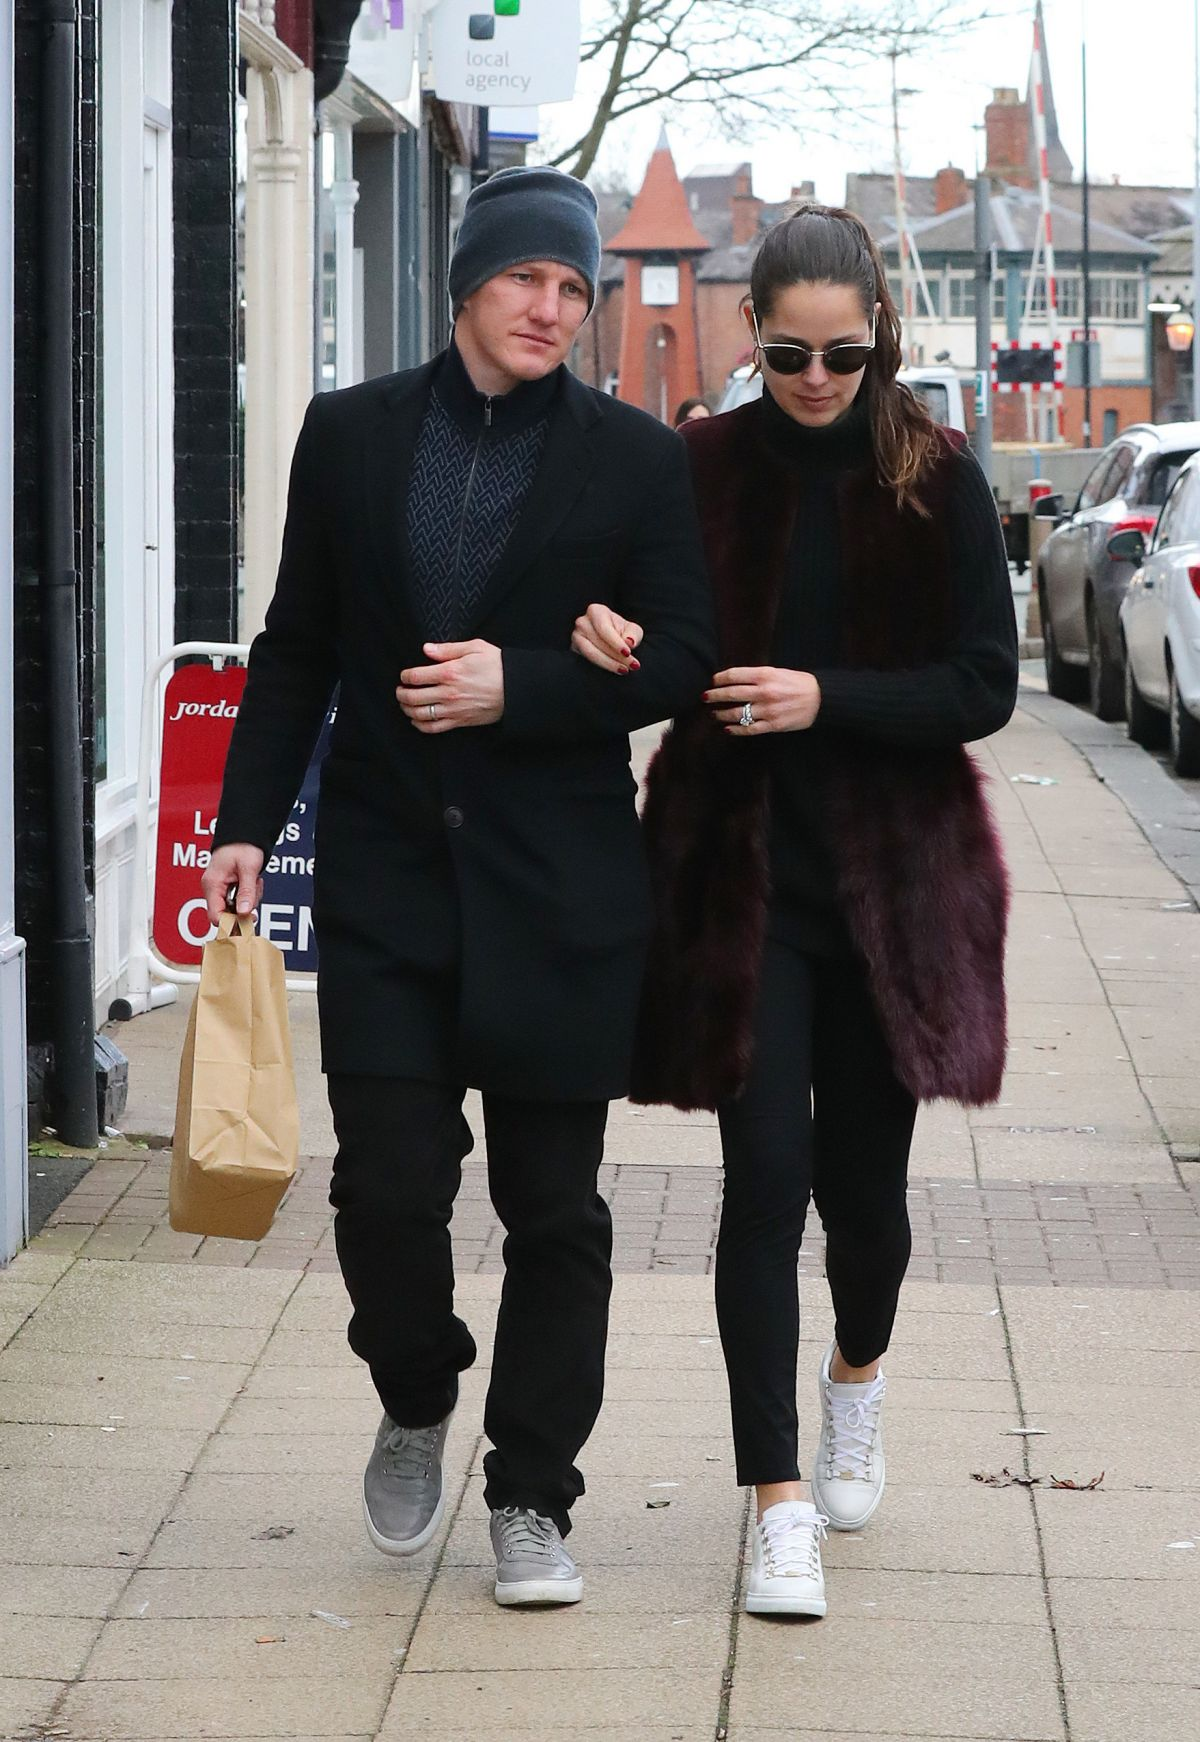 ANA IVANOVIC and Bastian Schweinsteiger at Victors Restaurant in Manchester 03/01/2017